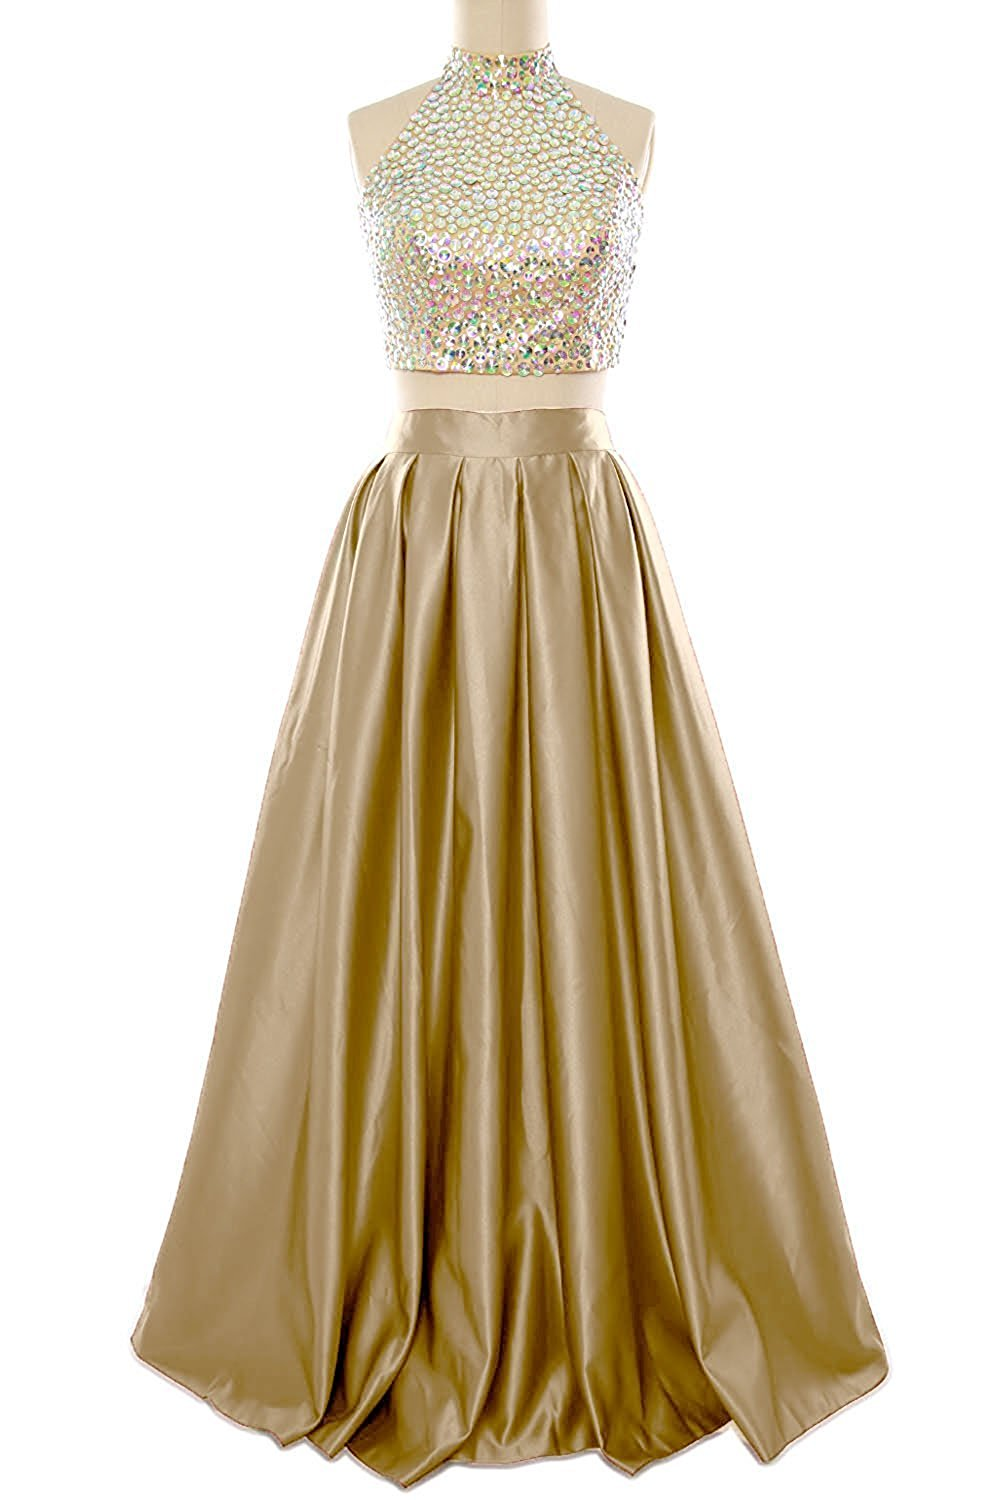 High Neck Prom Dress Beaded Gold Color Prom Dress Two Piece Prom